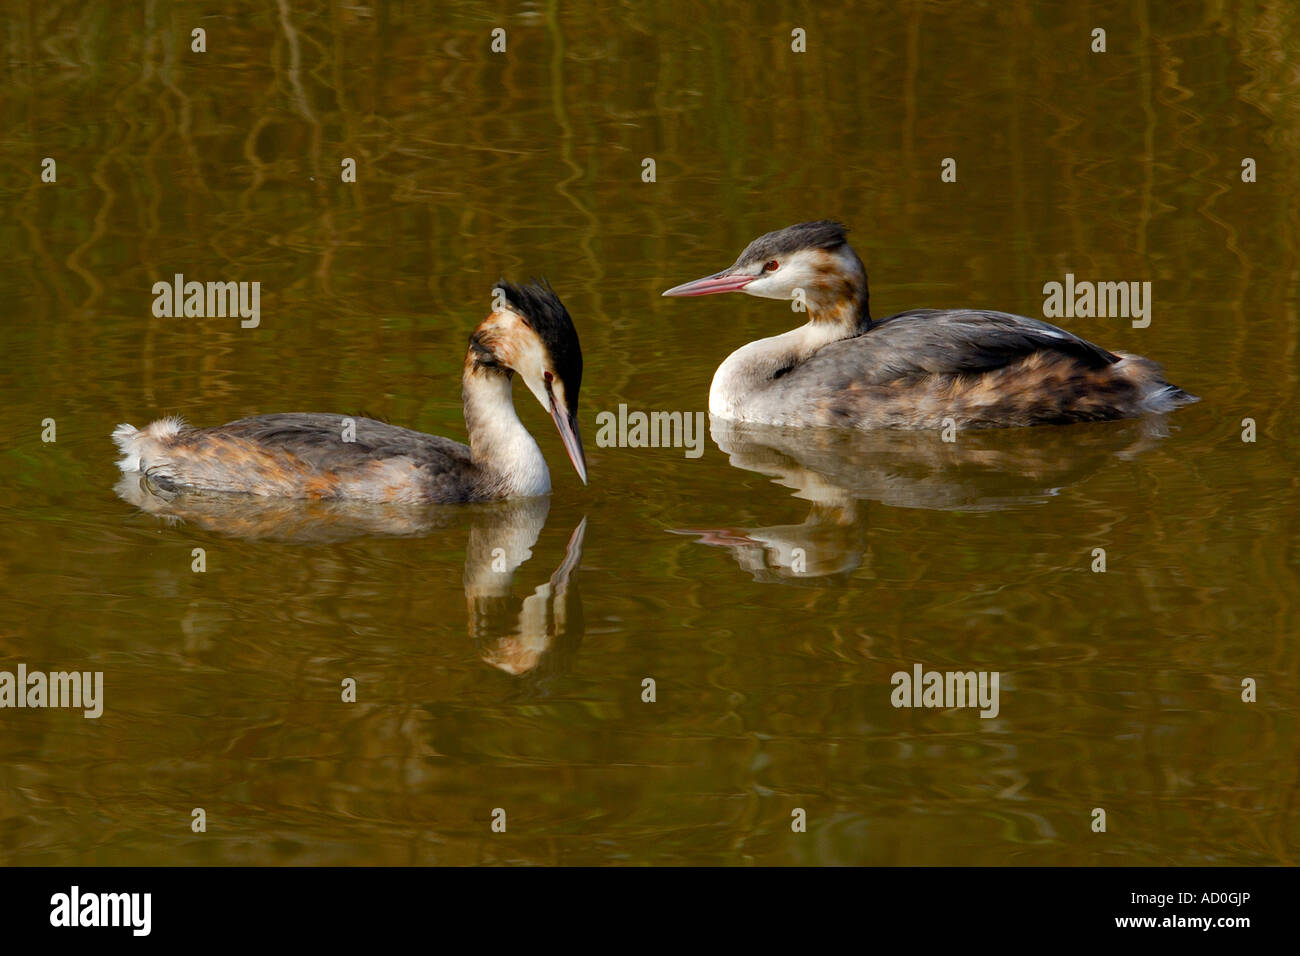 Pair of Great Crested Grebes Podiceps cristatus floating on a lake in side profile - Stock Image